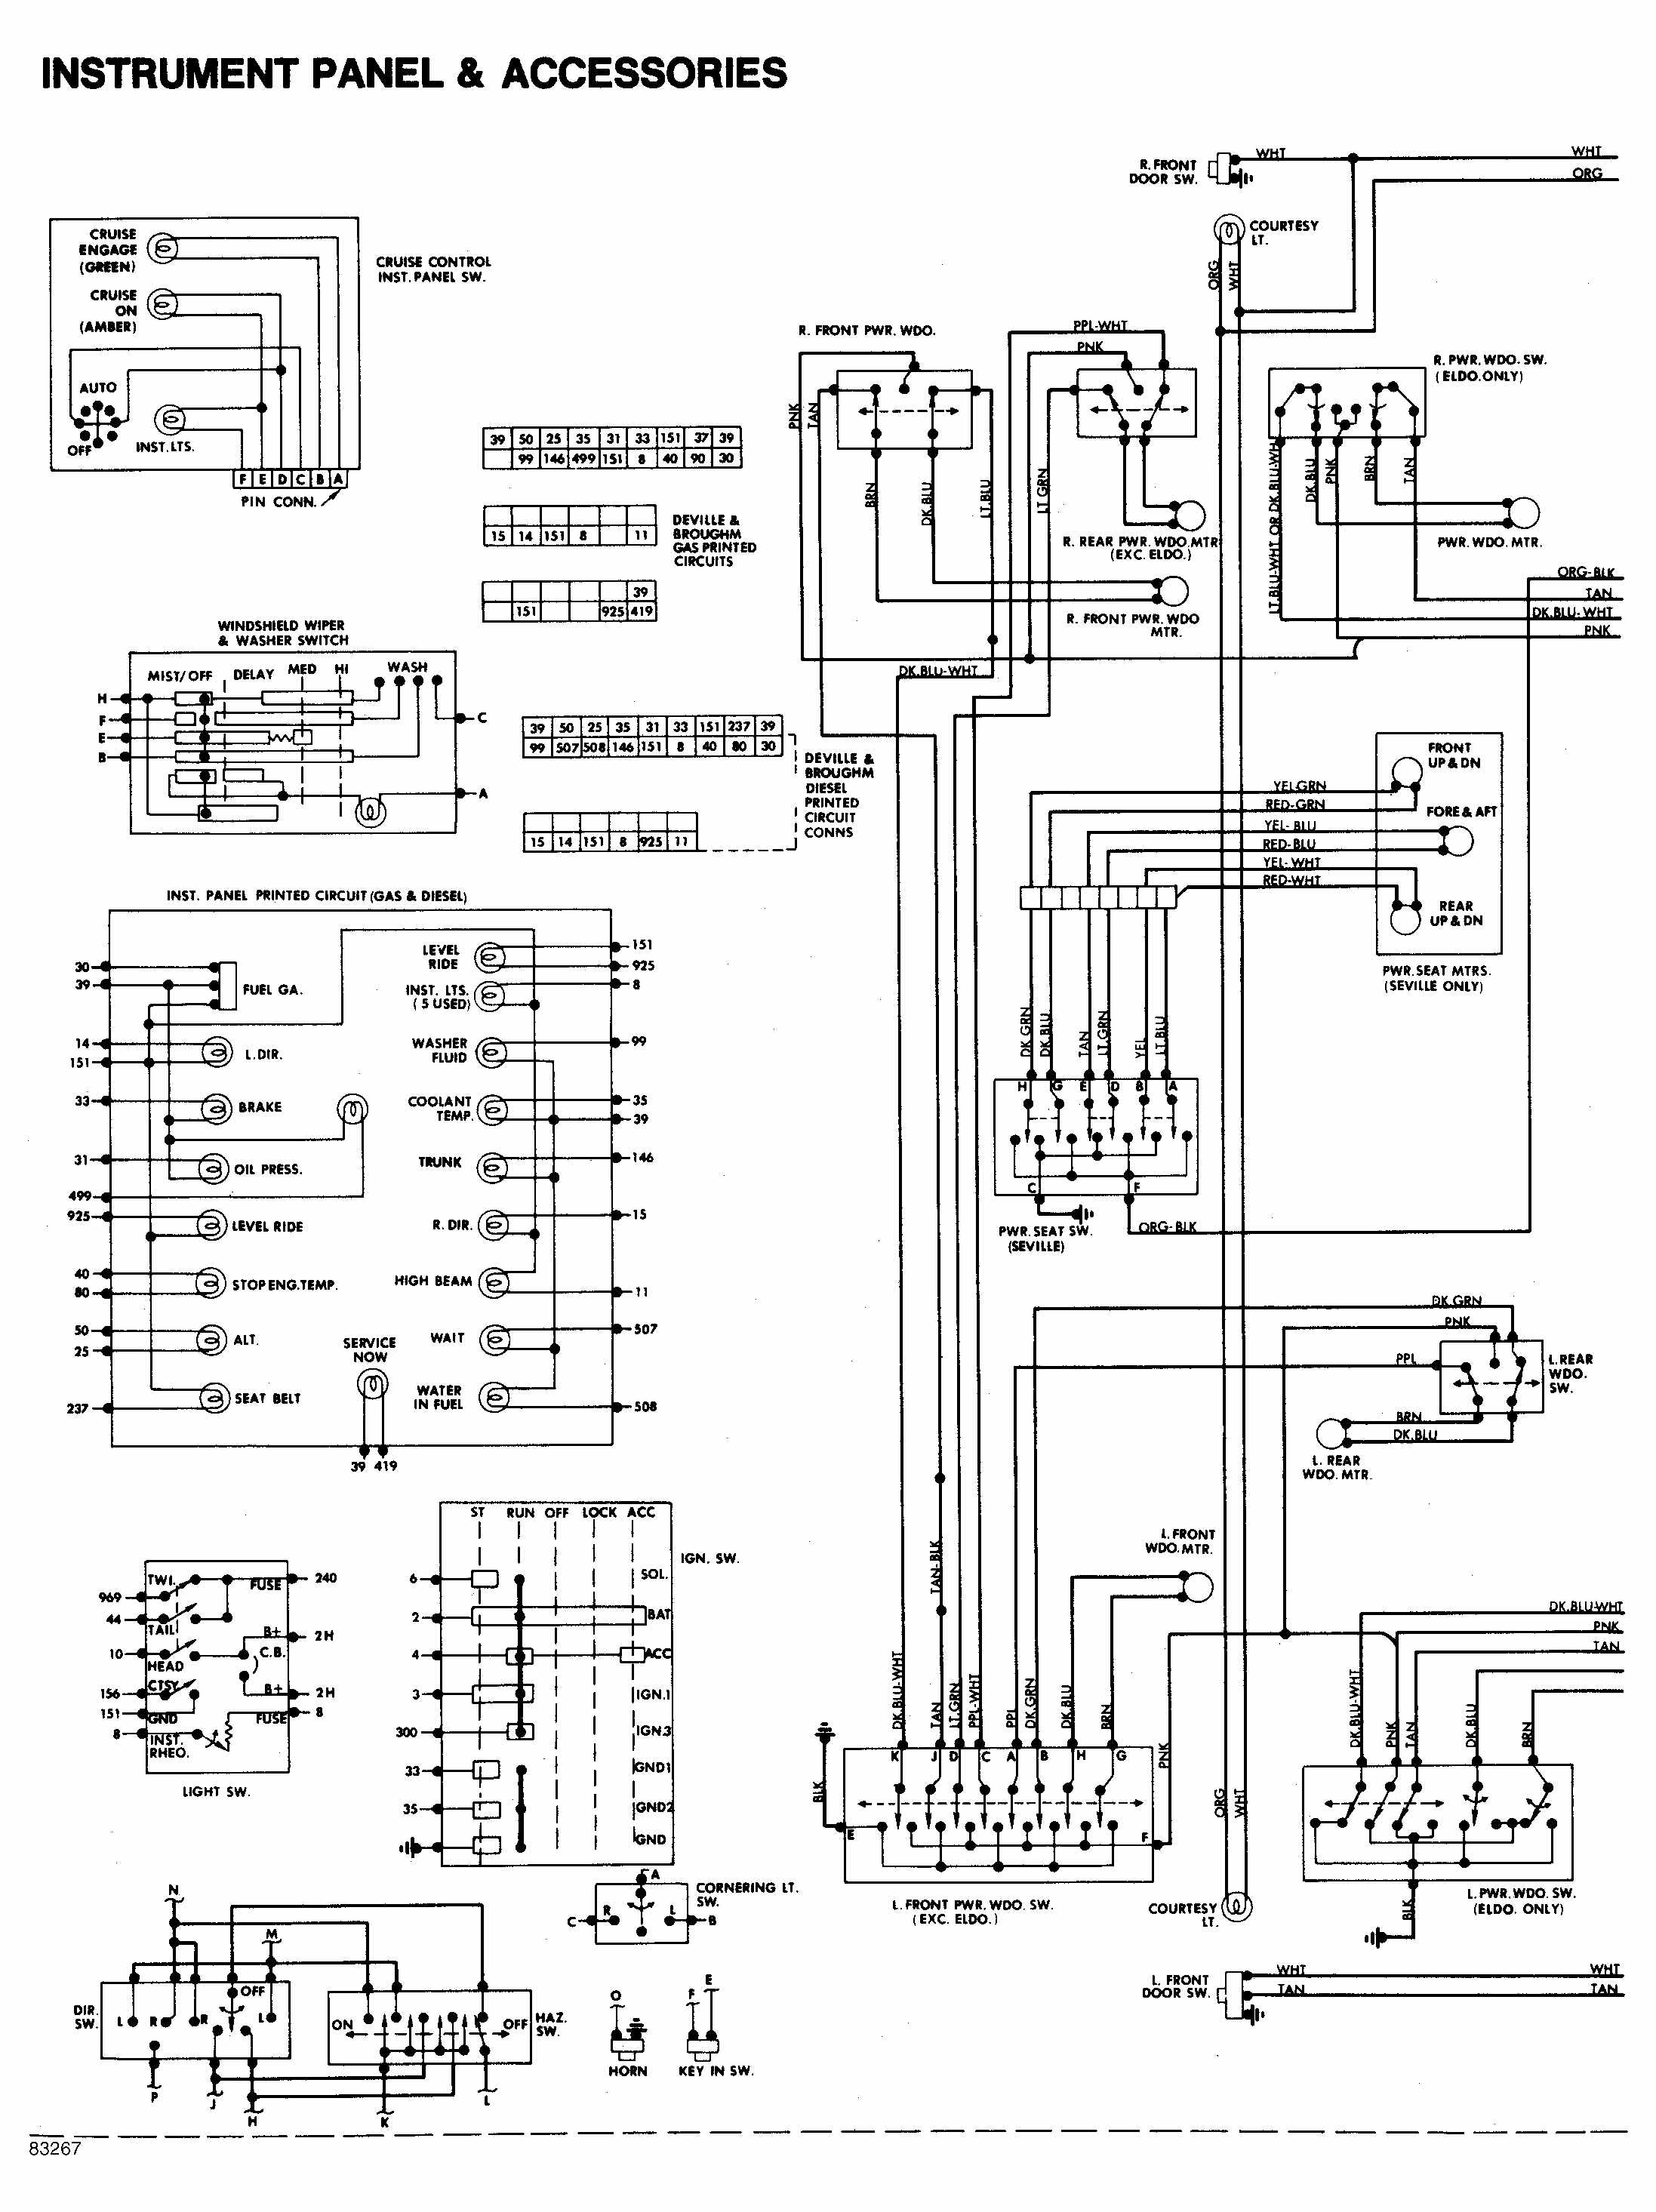 Wiring Diagram Cadillac Power Seat